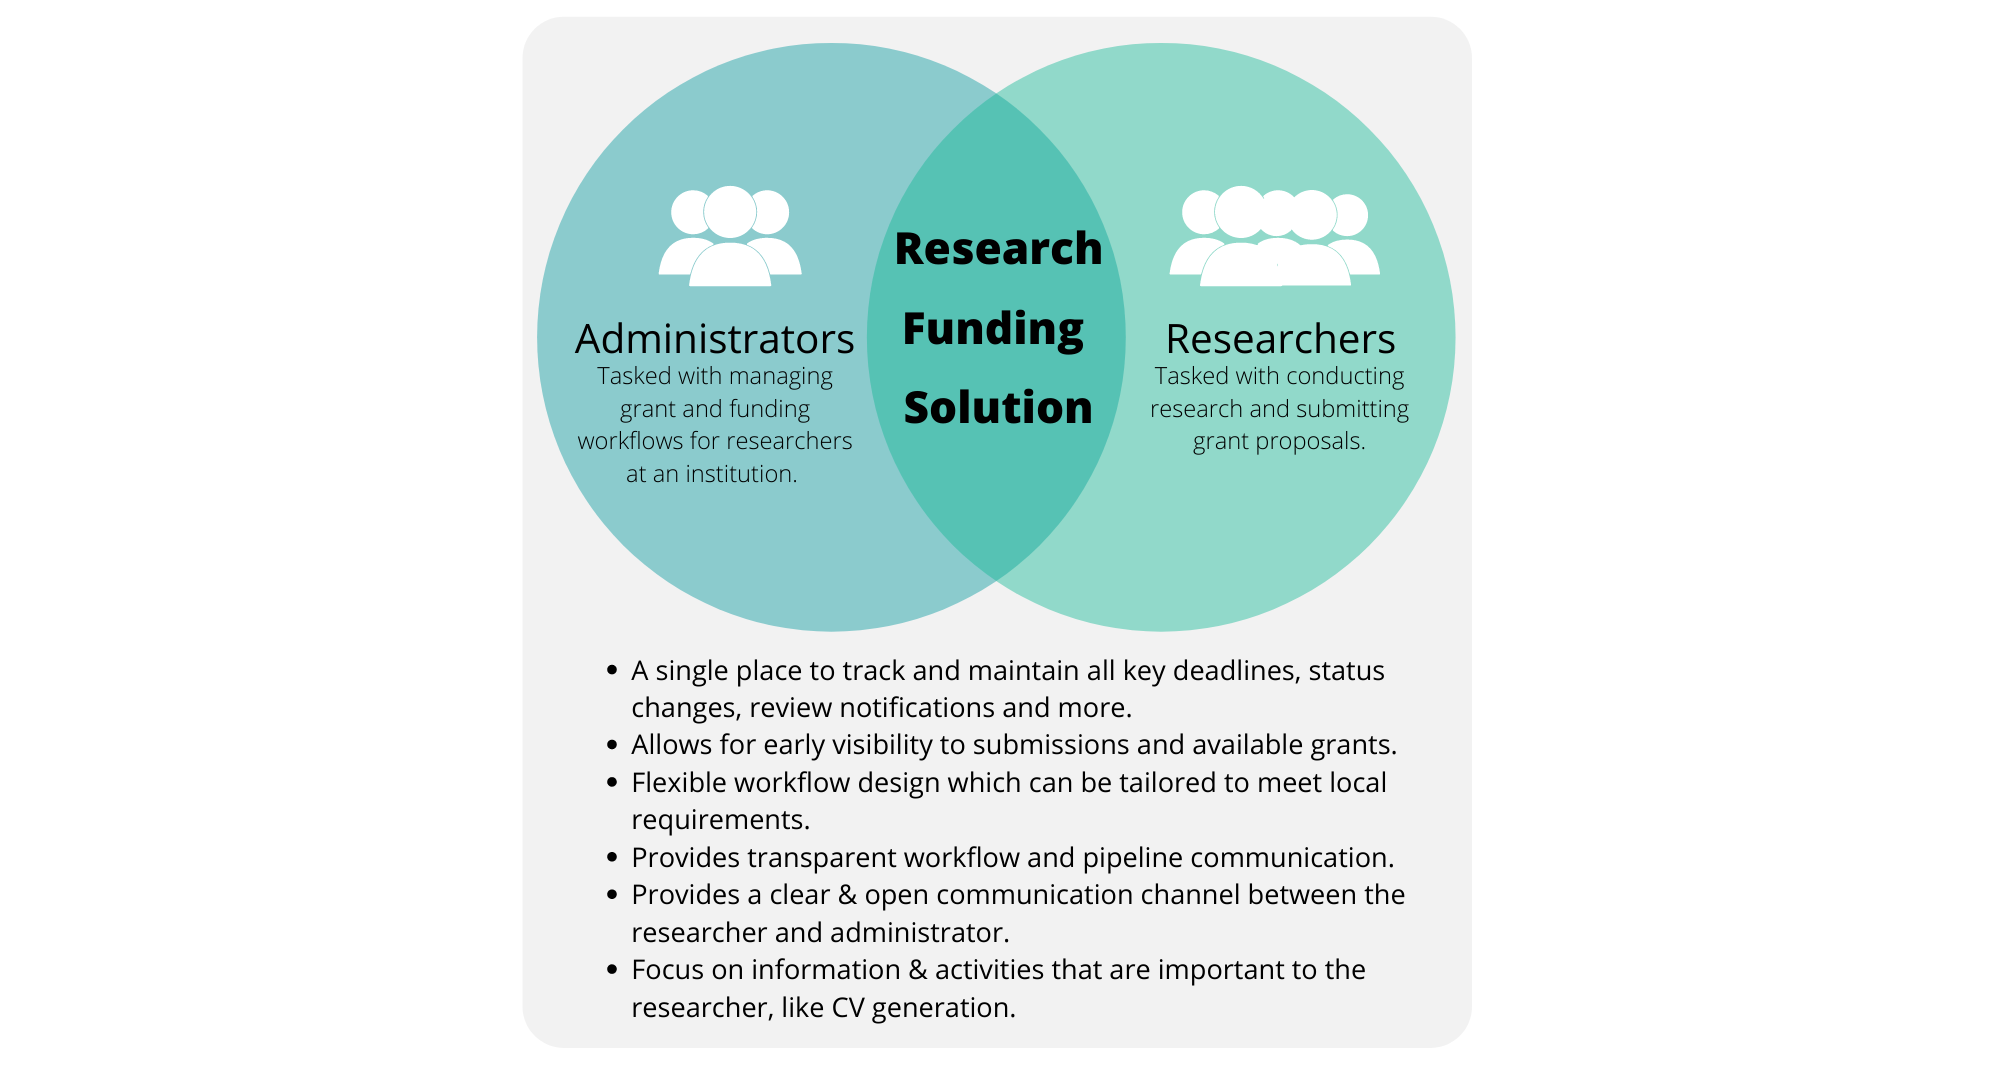 Research Funding Solution 12